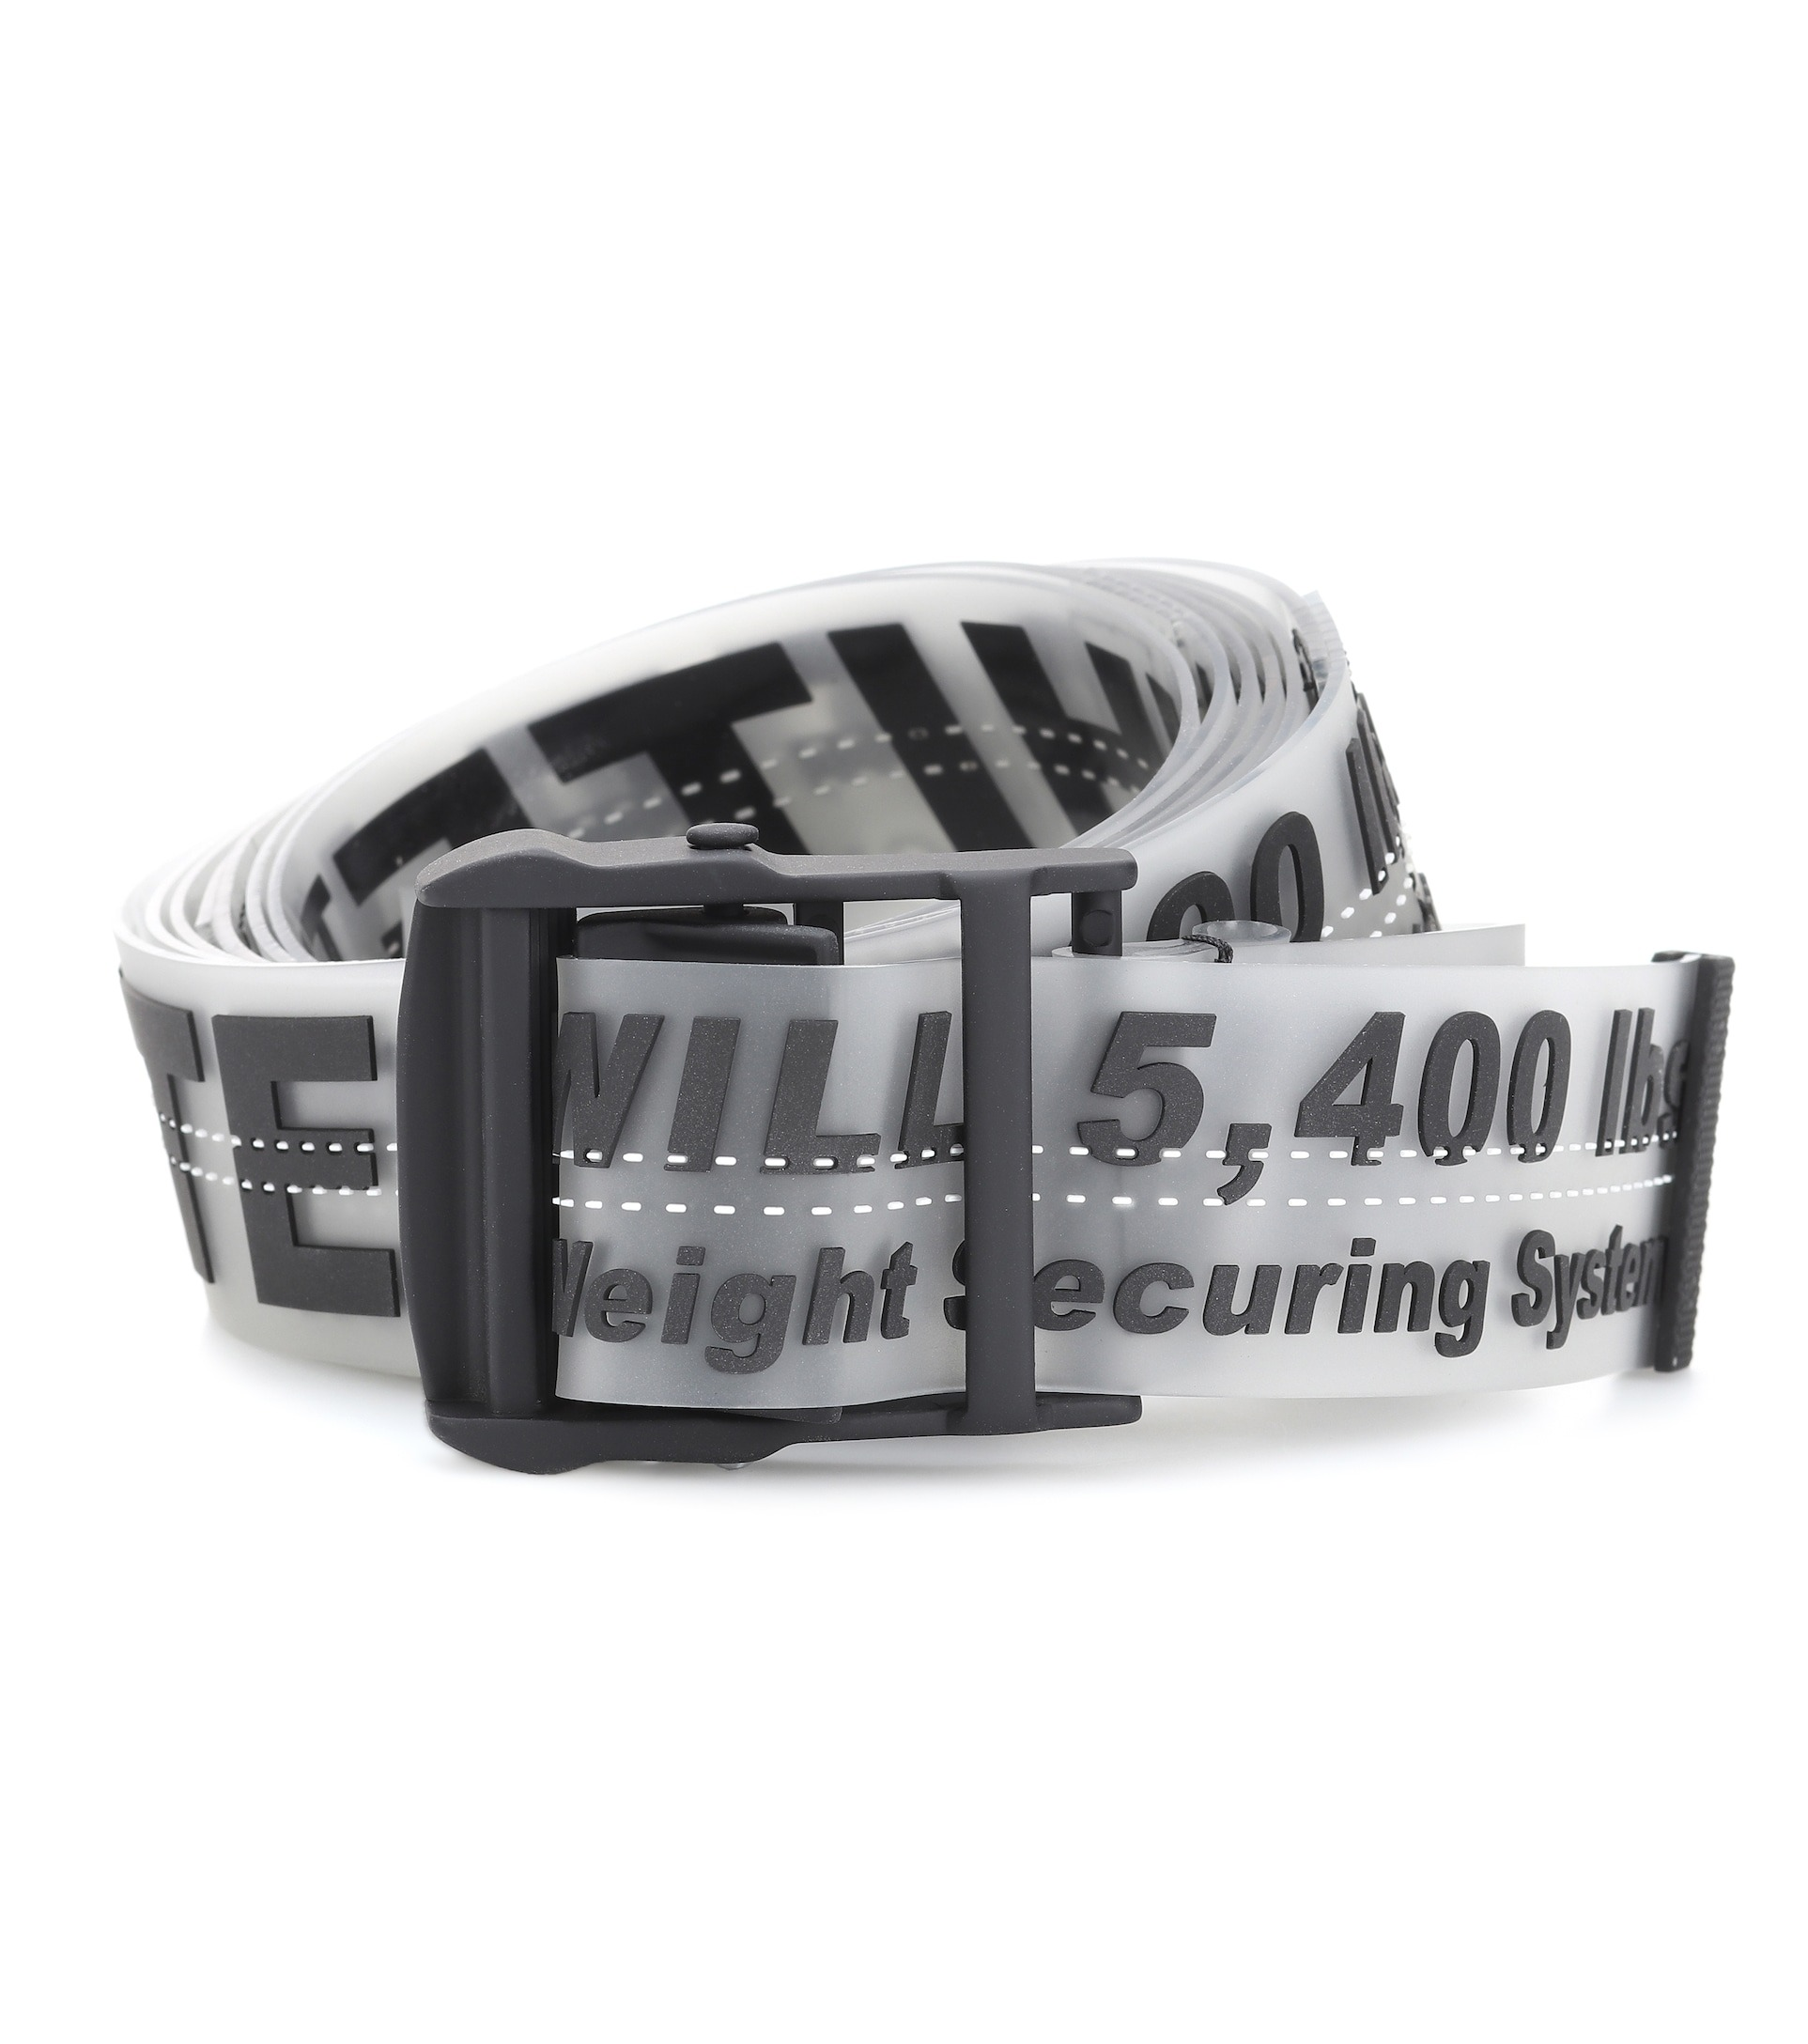 Off White Industrial Belt Yellow Strap Tape Automatic Buckle 200CM Hypebeast